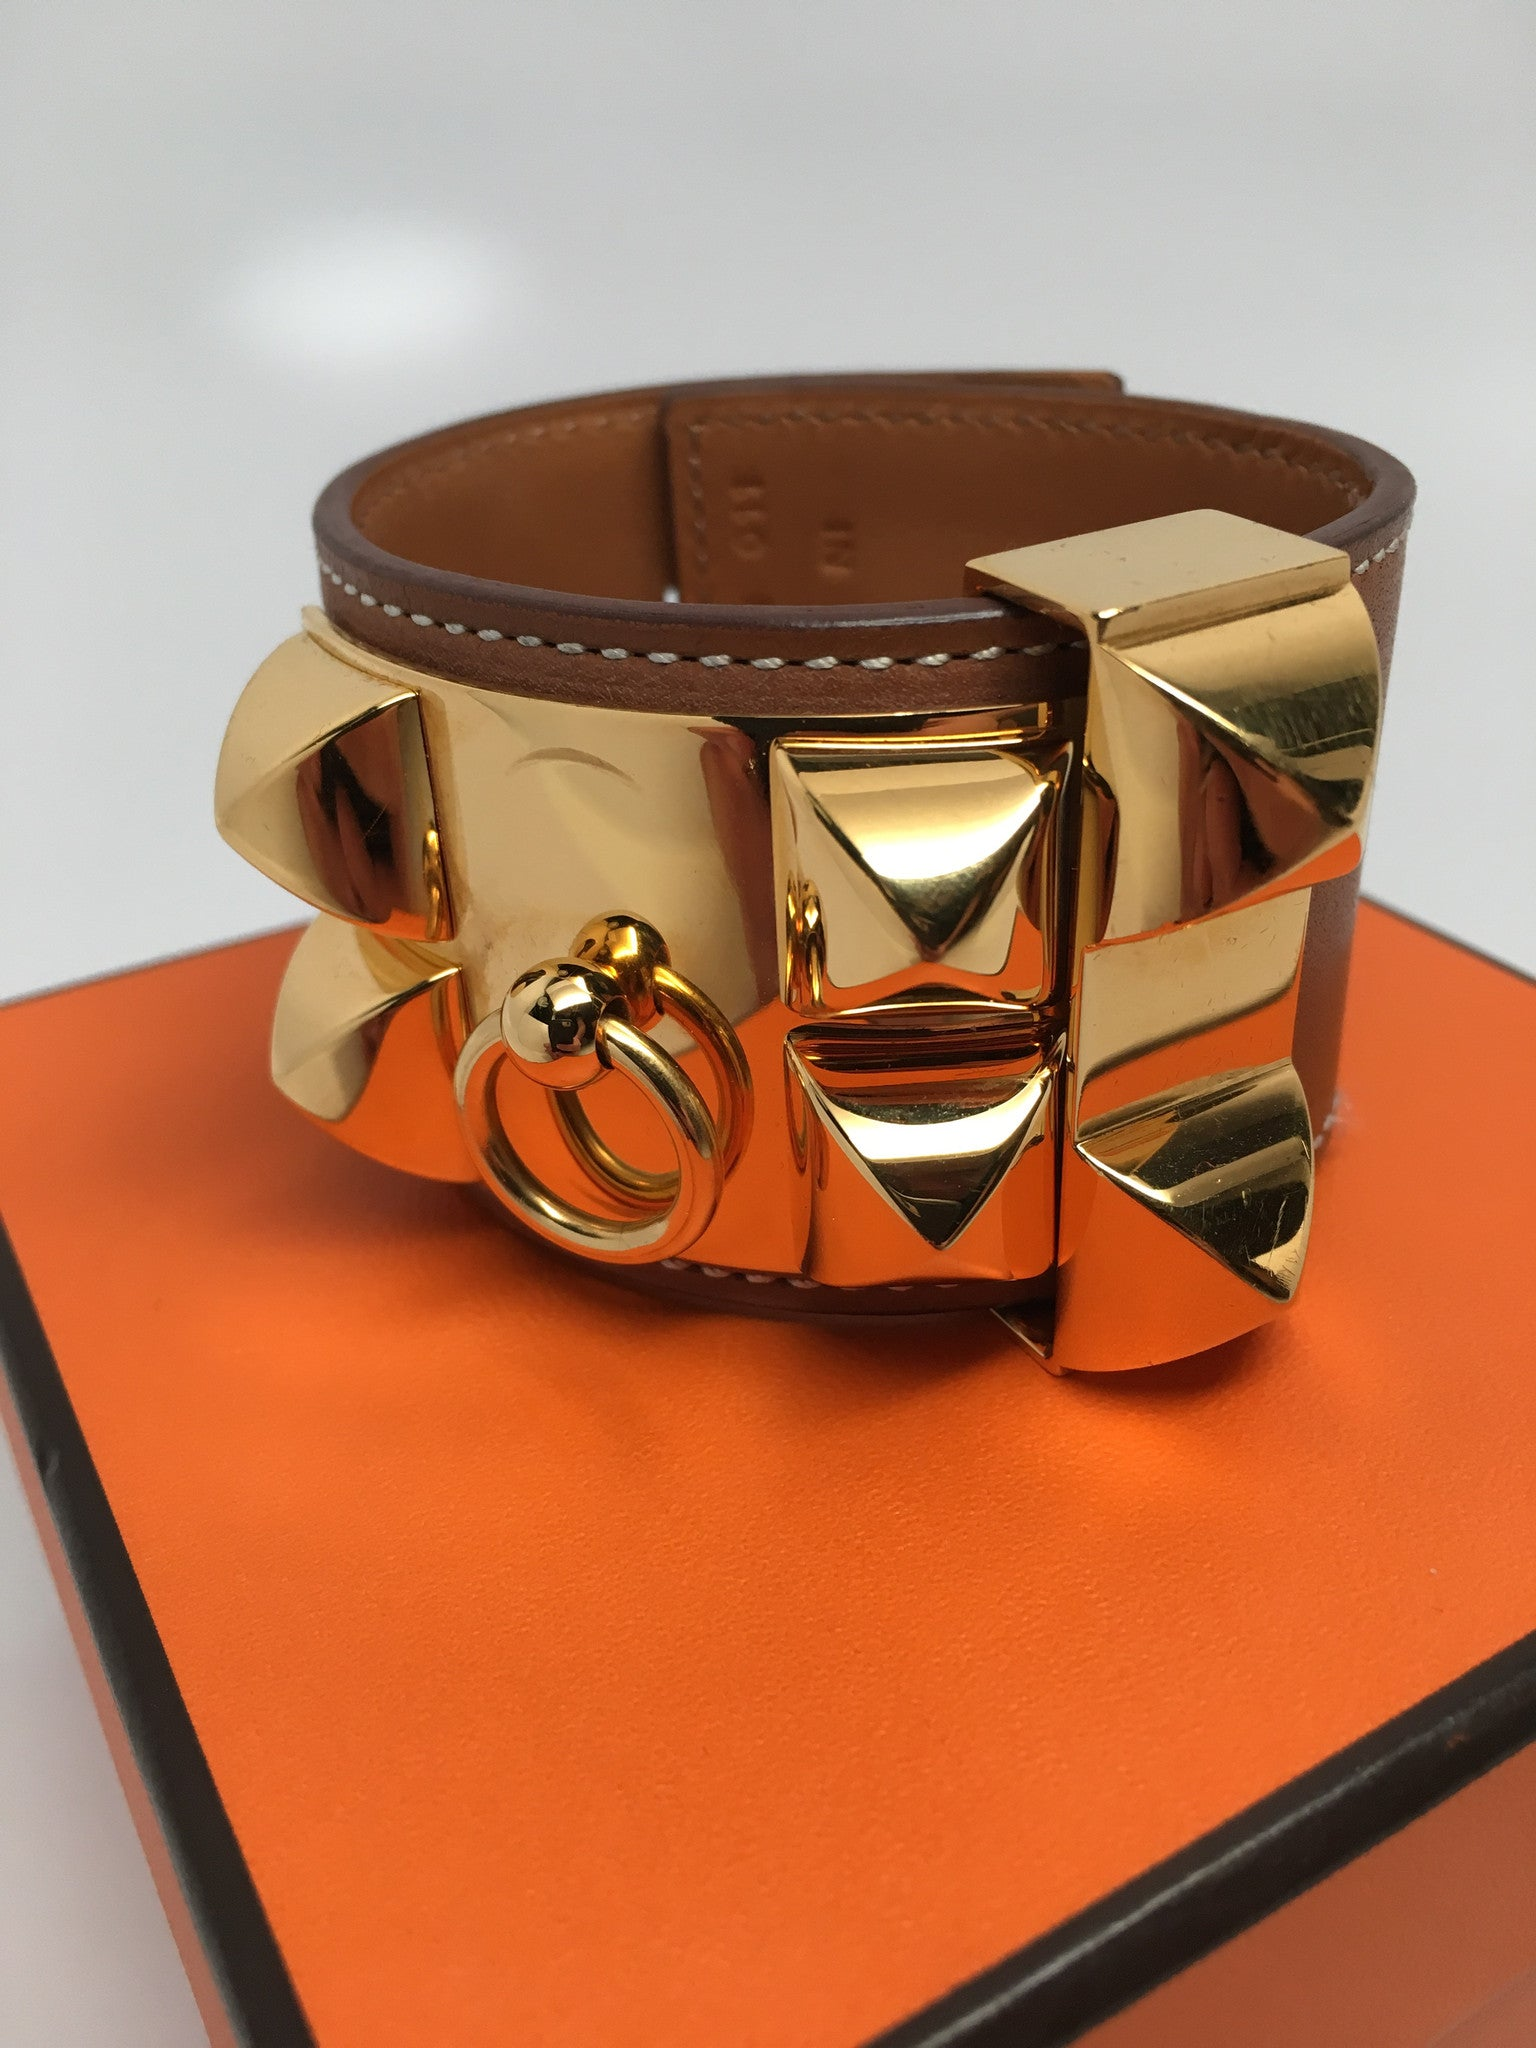 HERMES COLLIER DE CHIEN BRACELET - GOLD PLATED - SIZE SMALL (PM)